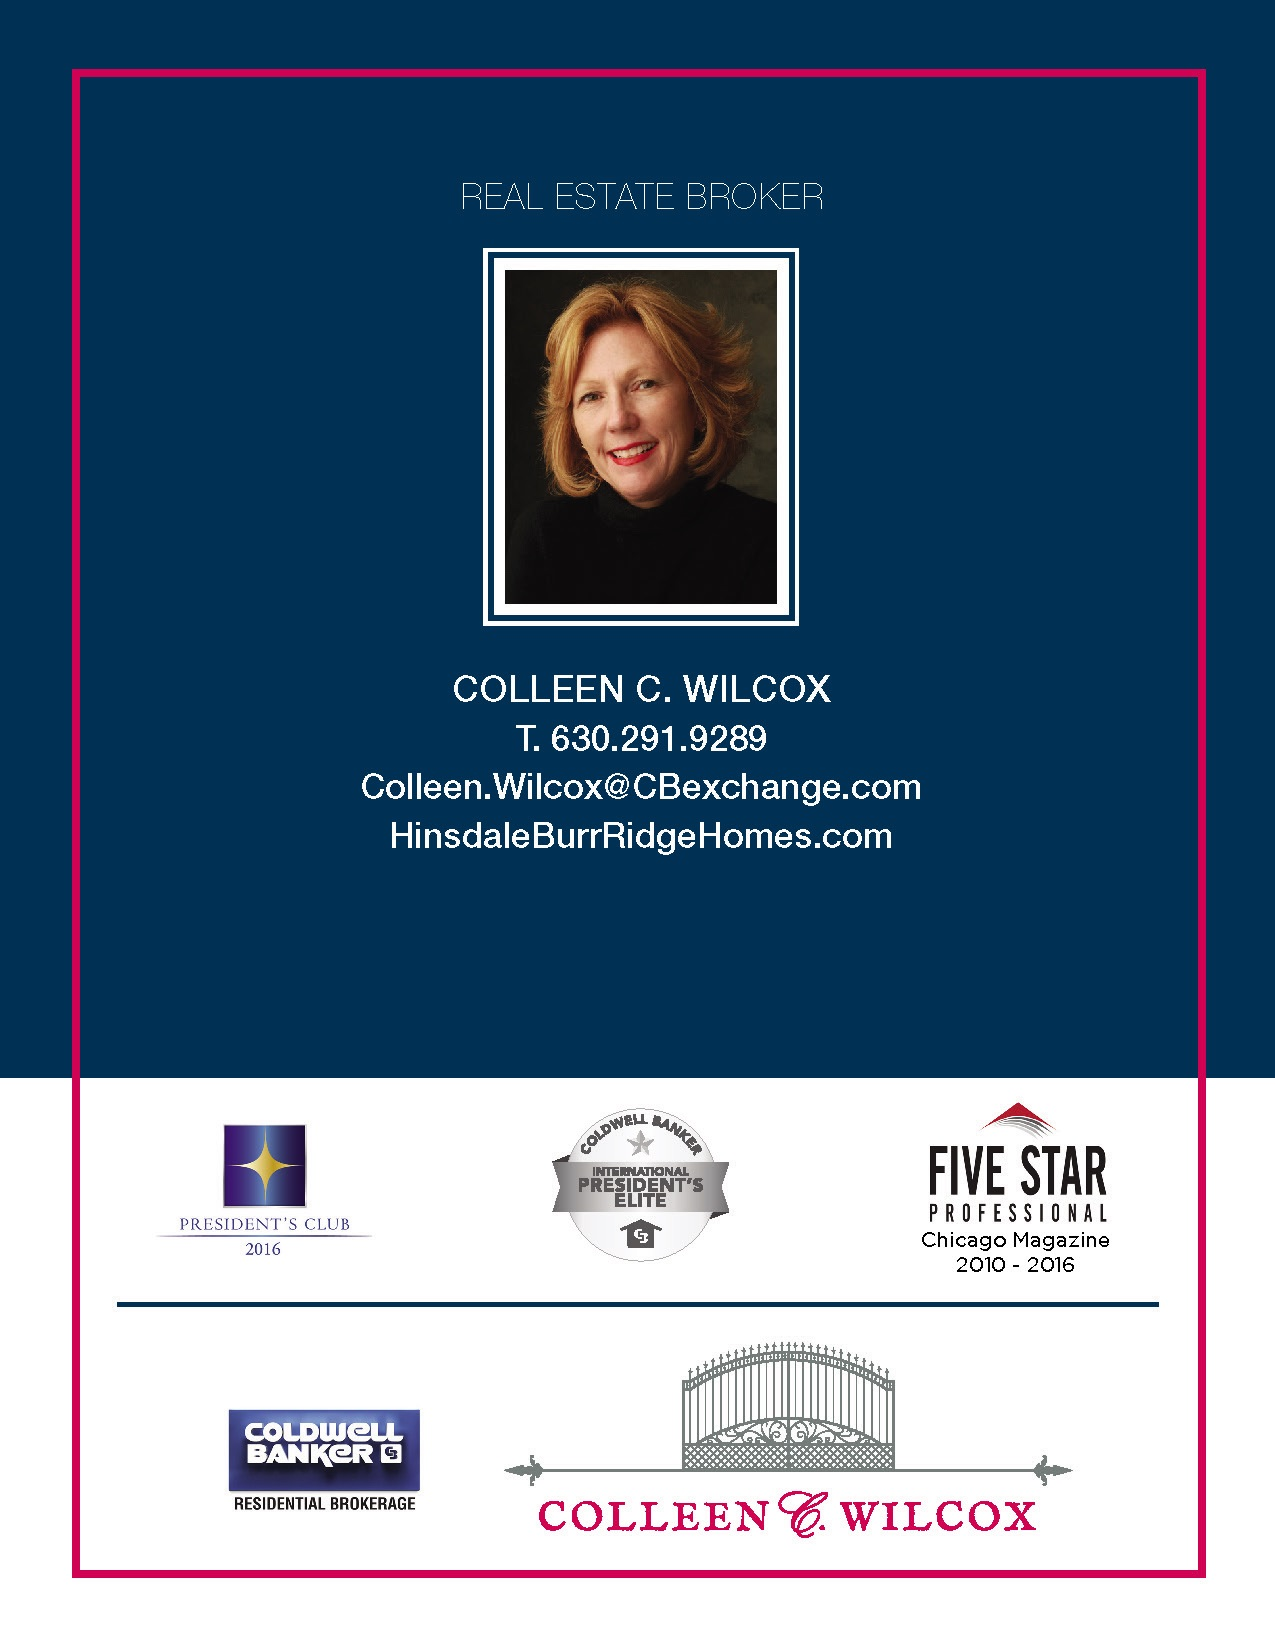 Why Colleen C  Wilcox - Coldwell Banker Residential